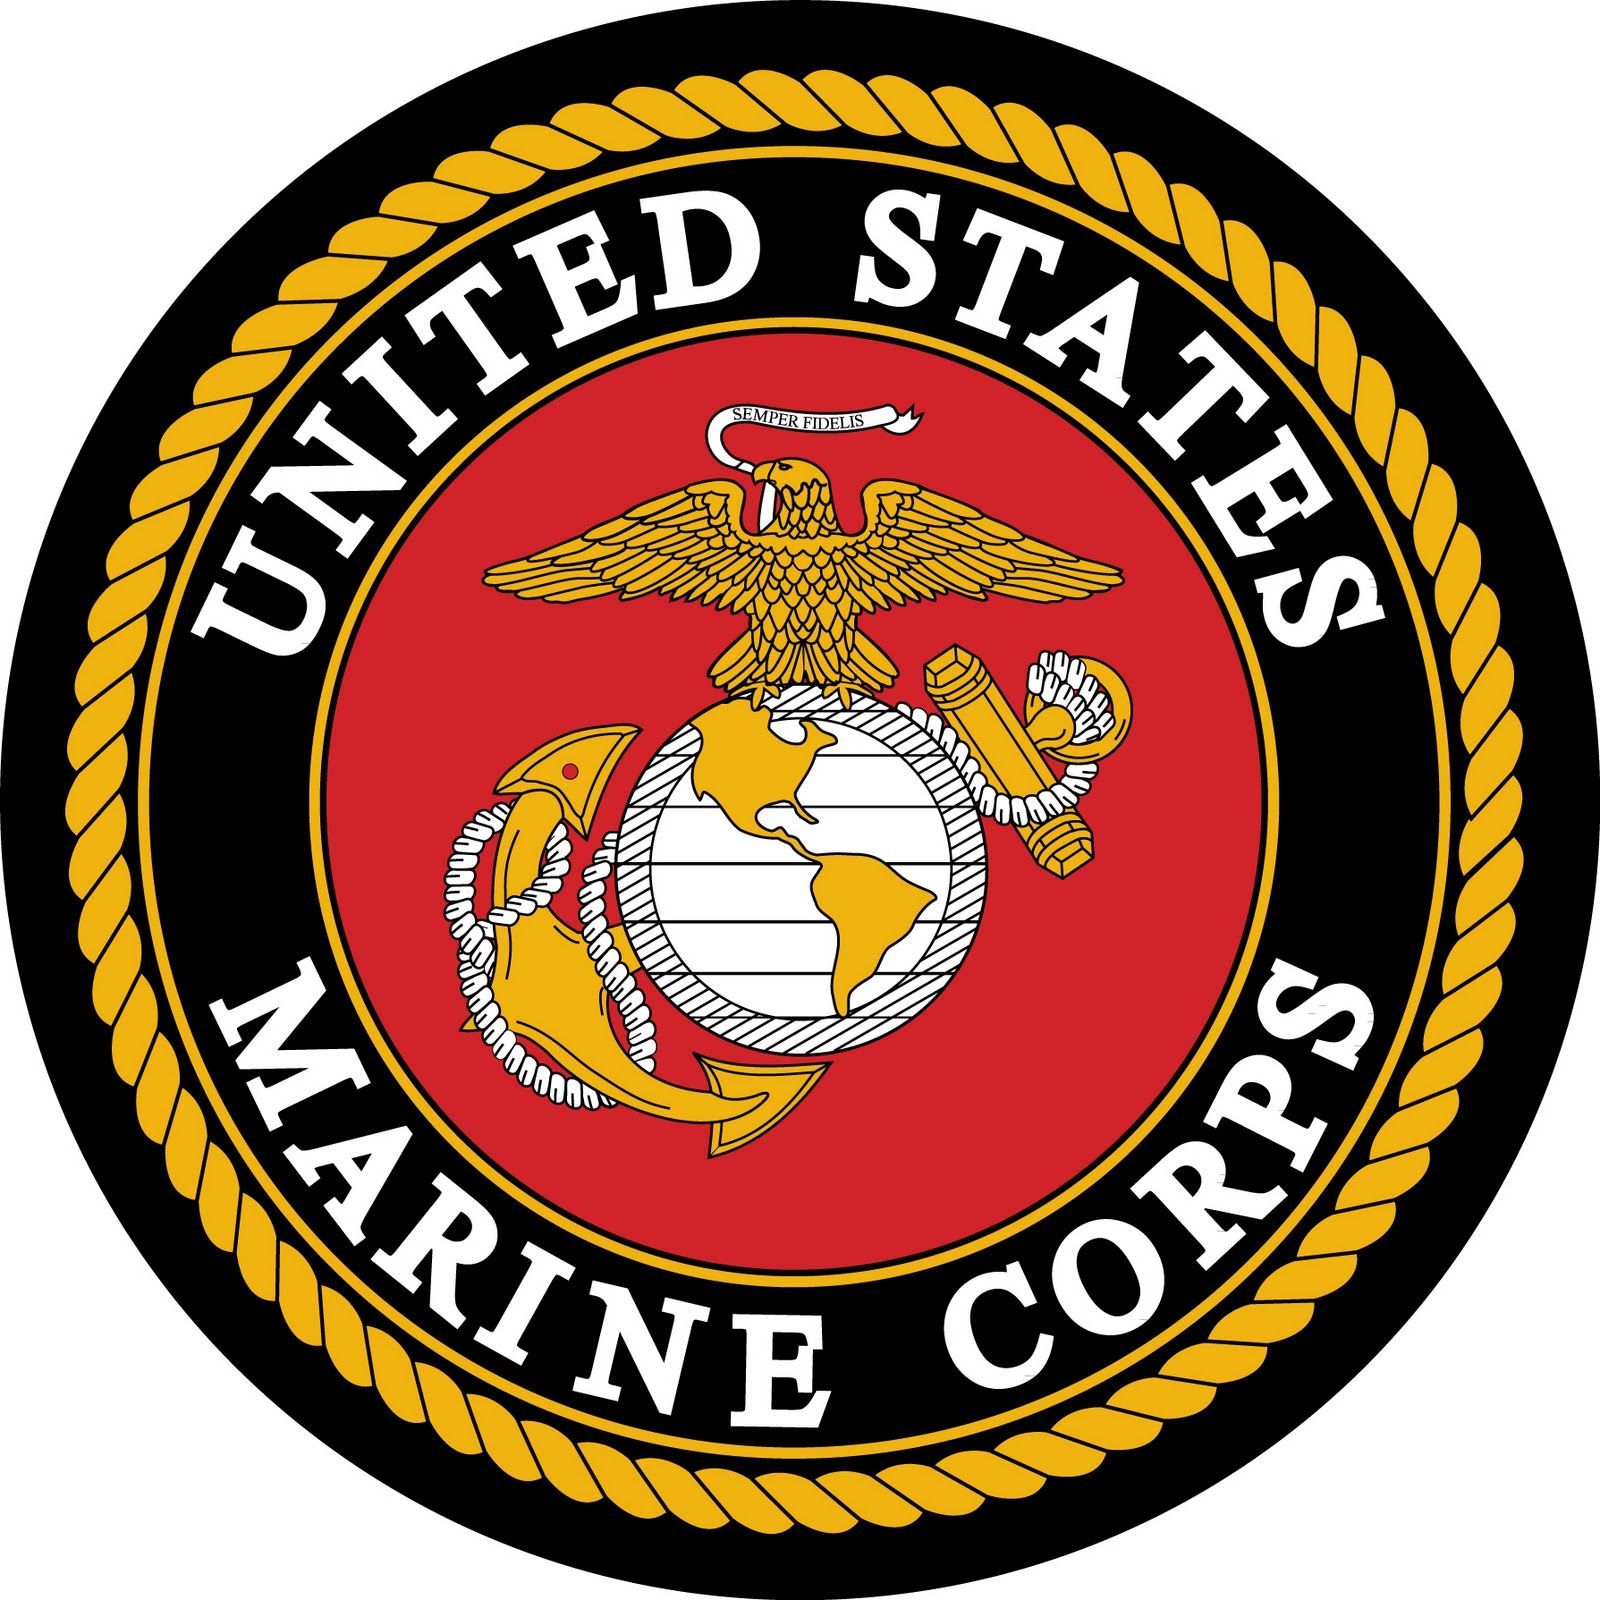 marine corp business research Hqmc g-10 force preservation directorate research & data management branch hqmc g-10 force preservation directorate psychological health branch hqmc g-10 force preservation directorate policy & program branch headquarters and service battalion commanding officer adjutant chaplain office family readiness officer.